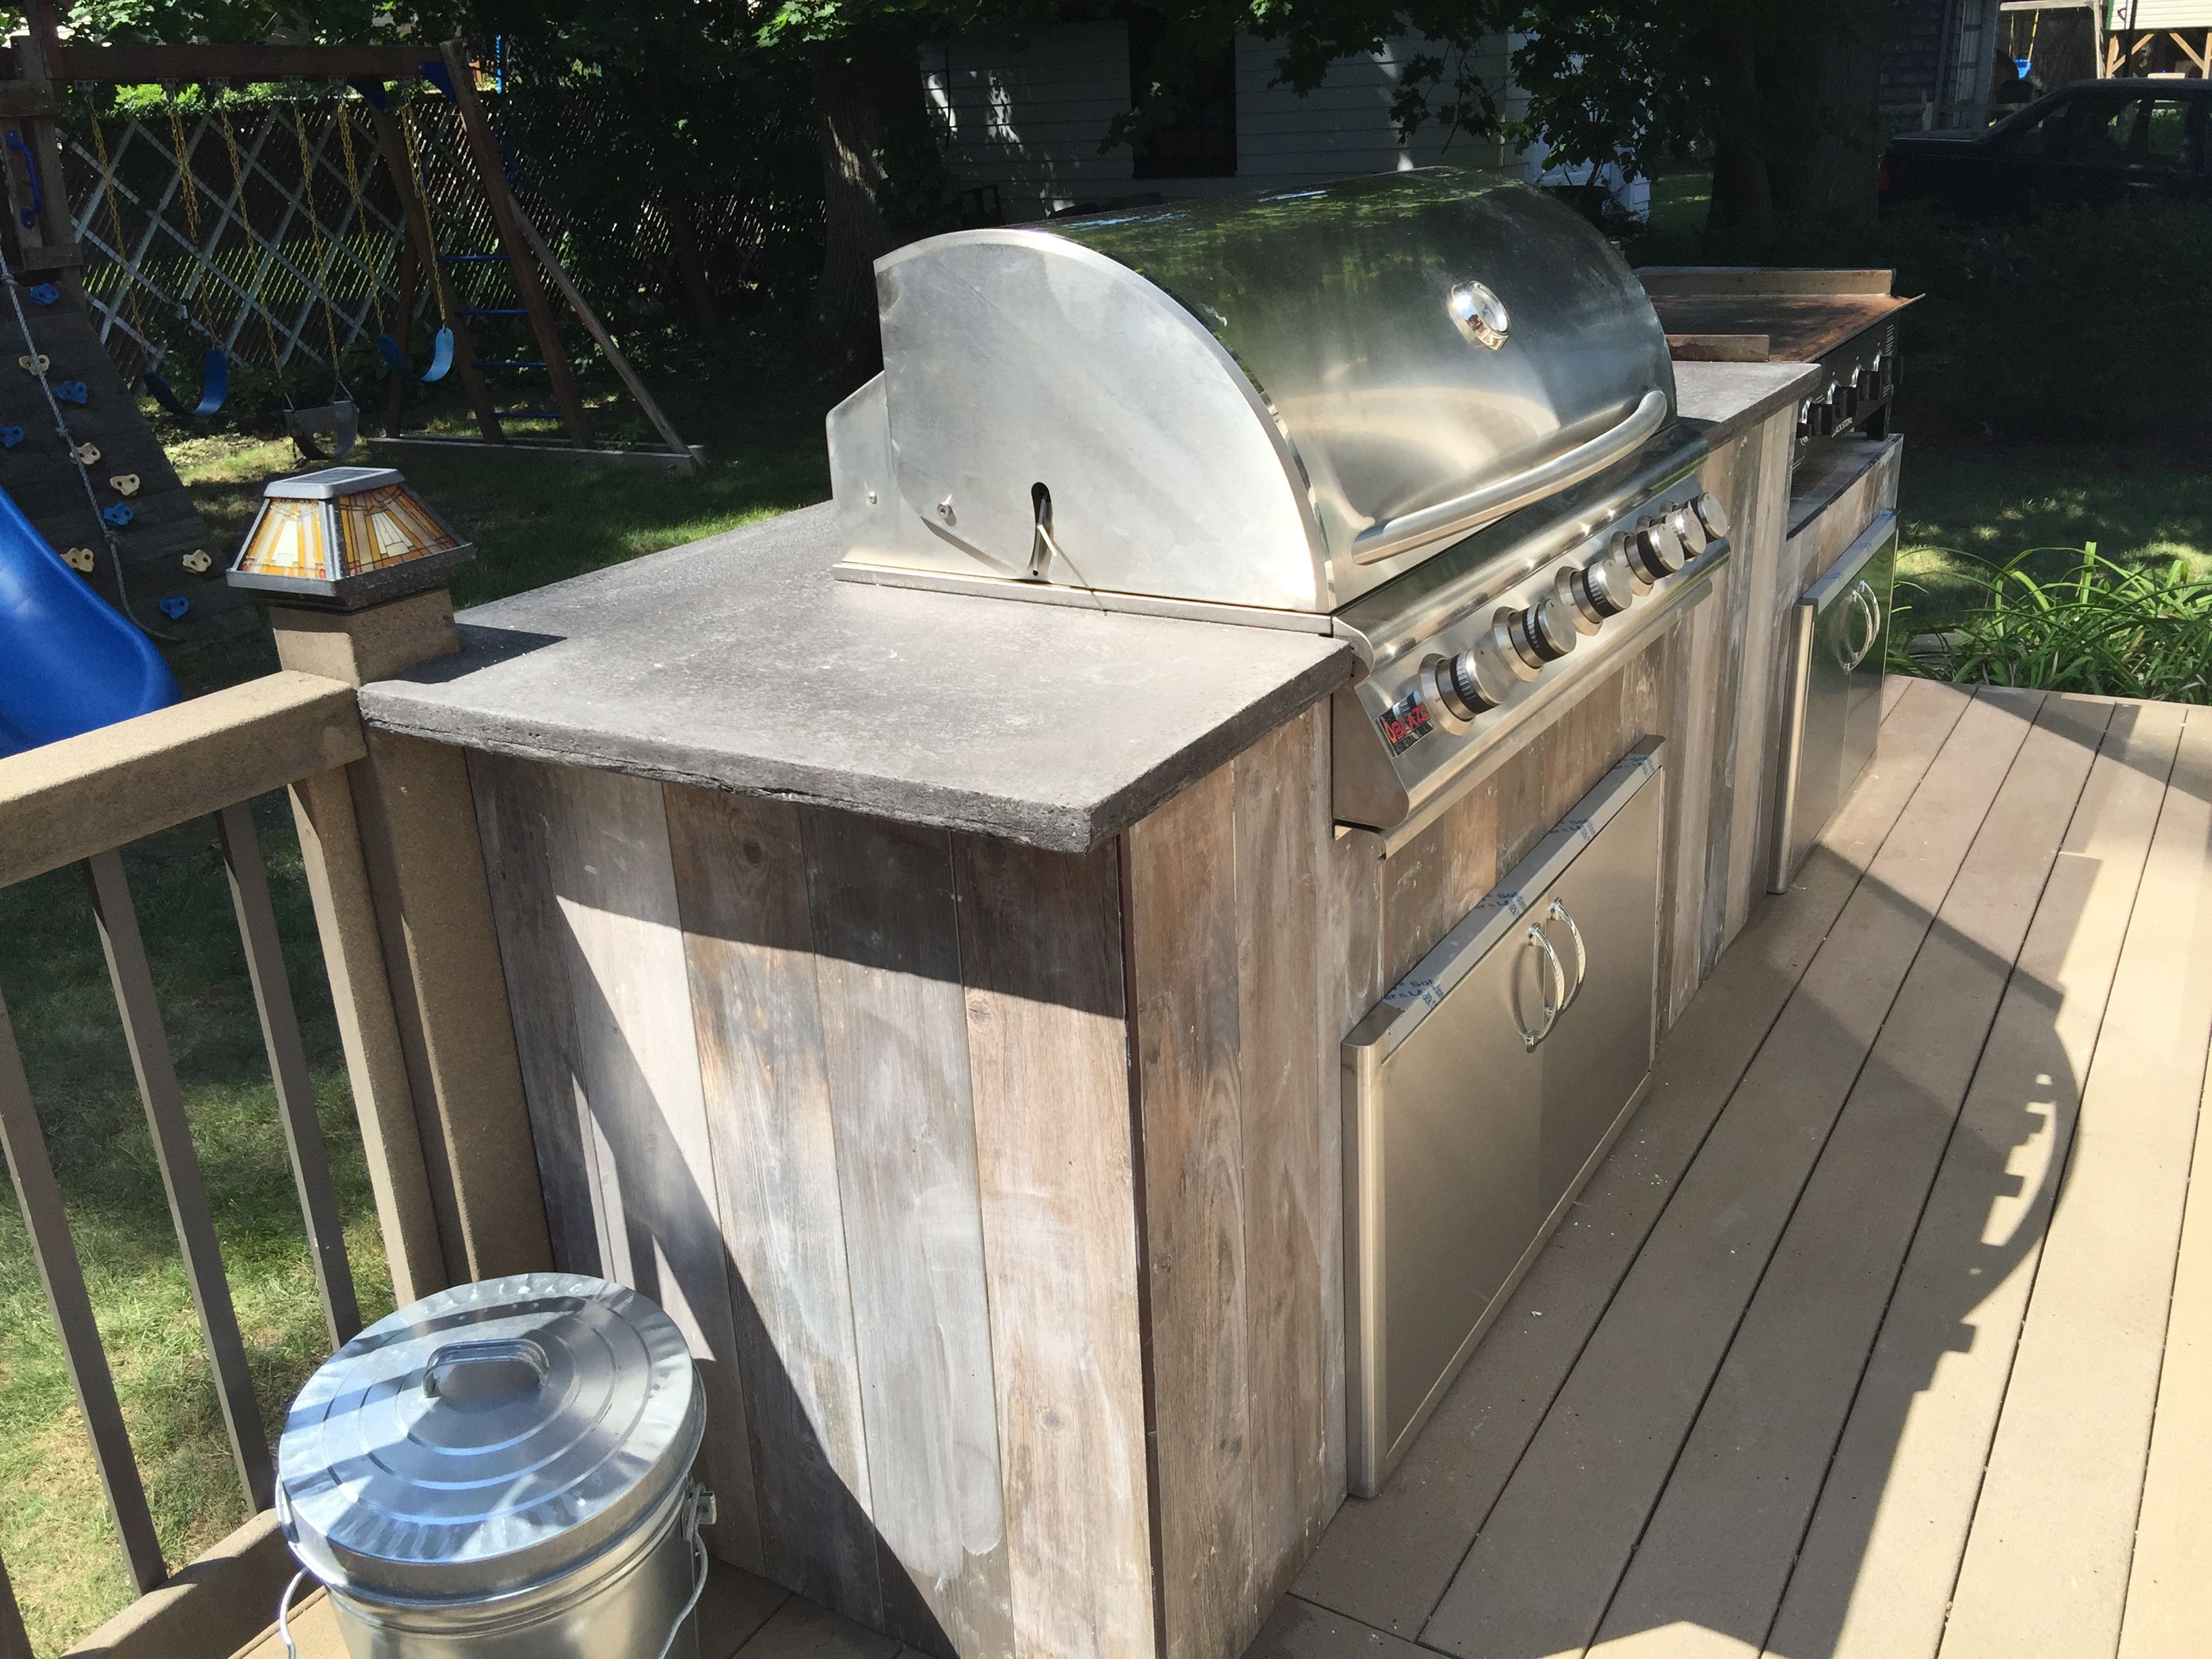 Outdoor Kitchen With Grill And Griddle Station With Concrete Countertop And Reclaimed Wood Outdoor Kitchen Countertops Outdoor Kitchen Outdoor Kitchen Design